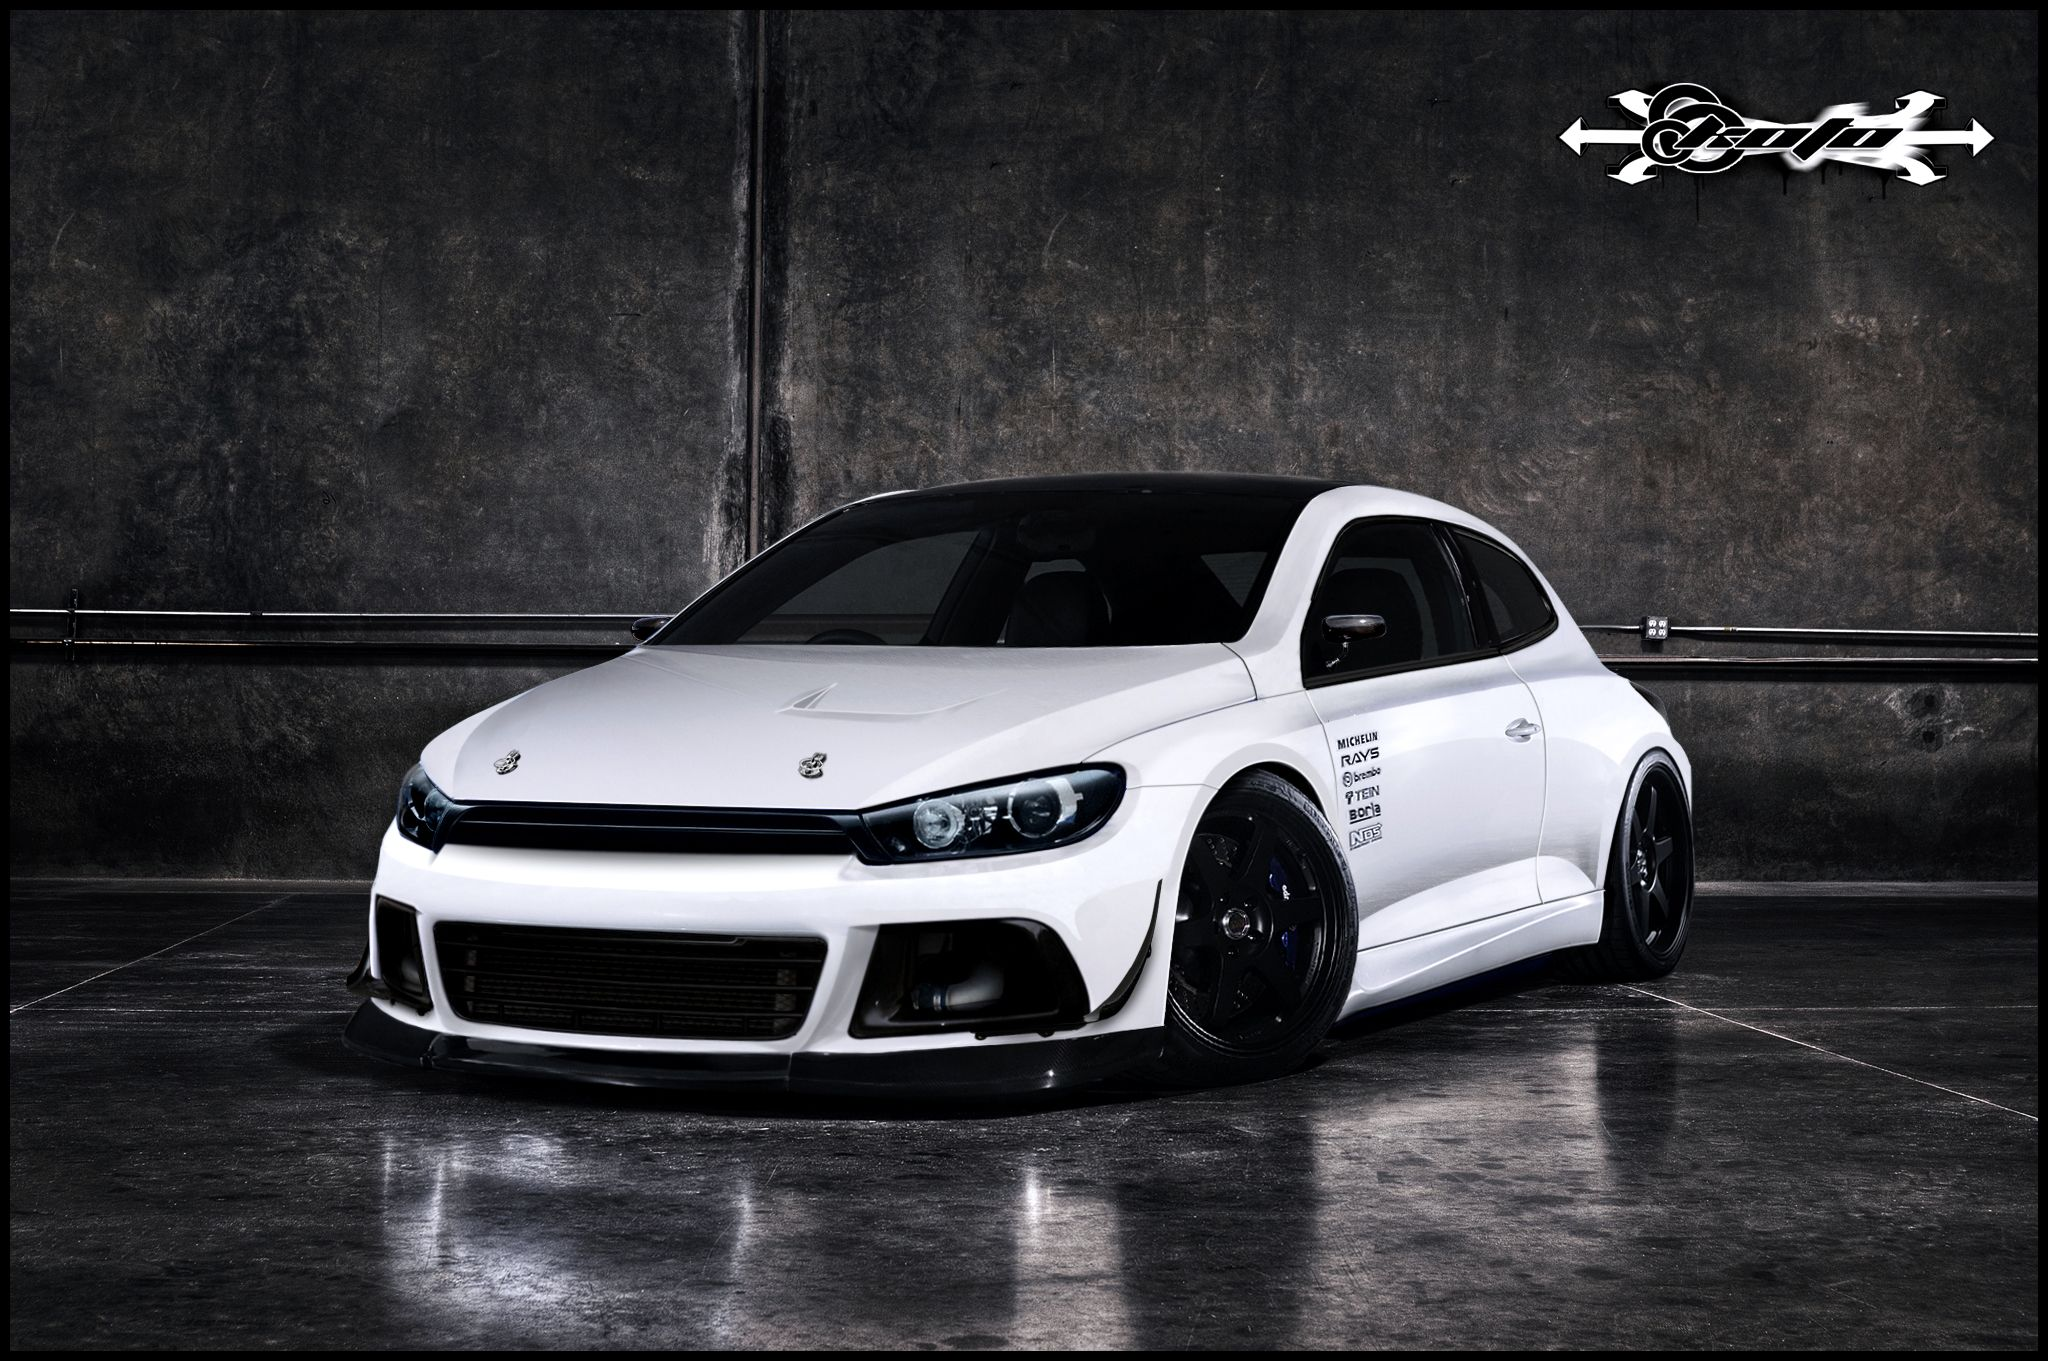 vw scirocco r by koto pinterest vw scirocco vw and volkswagen. Black Bedroom Furniture Sets. Home Design Ideas